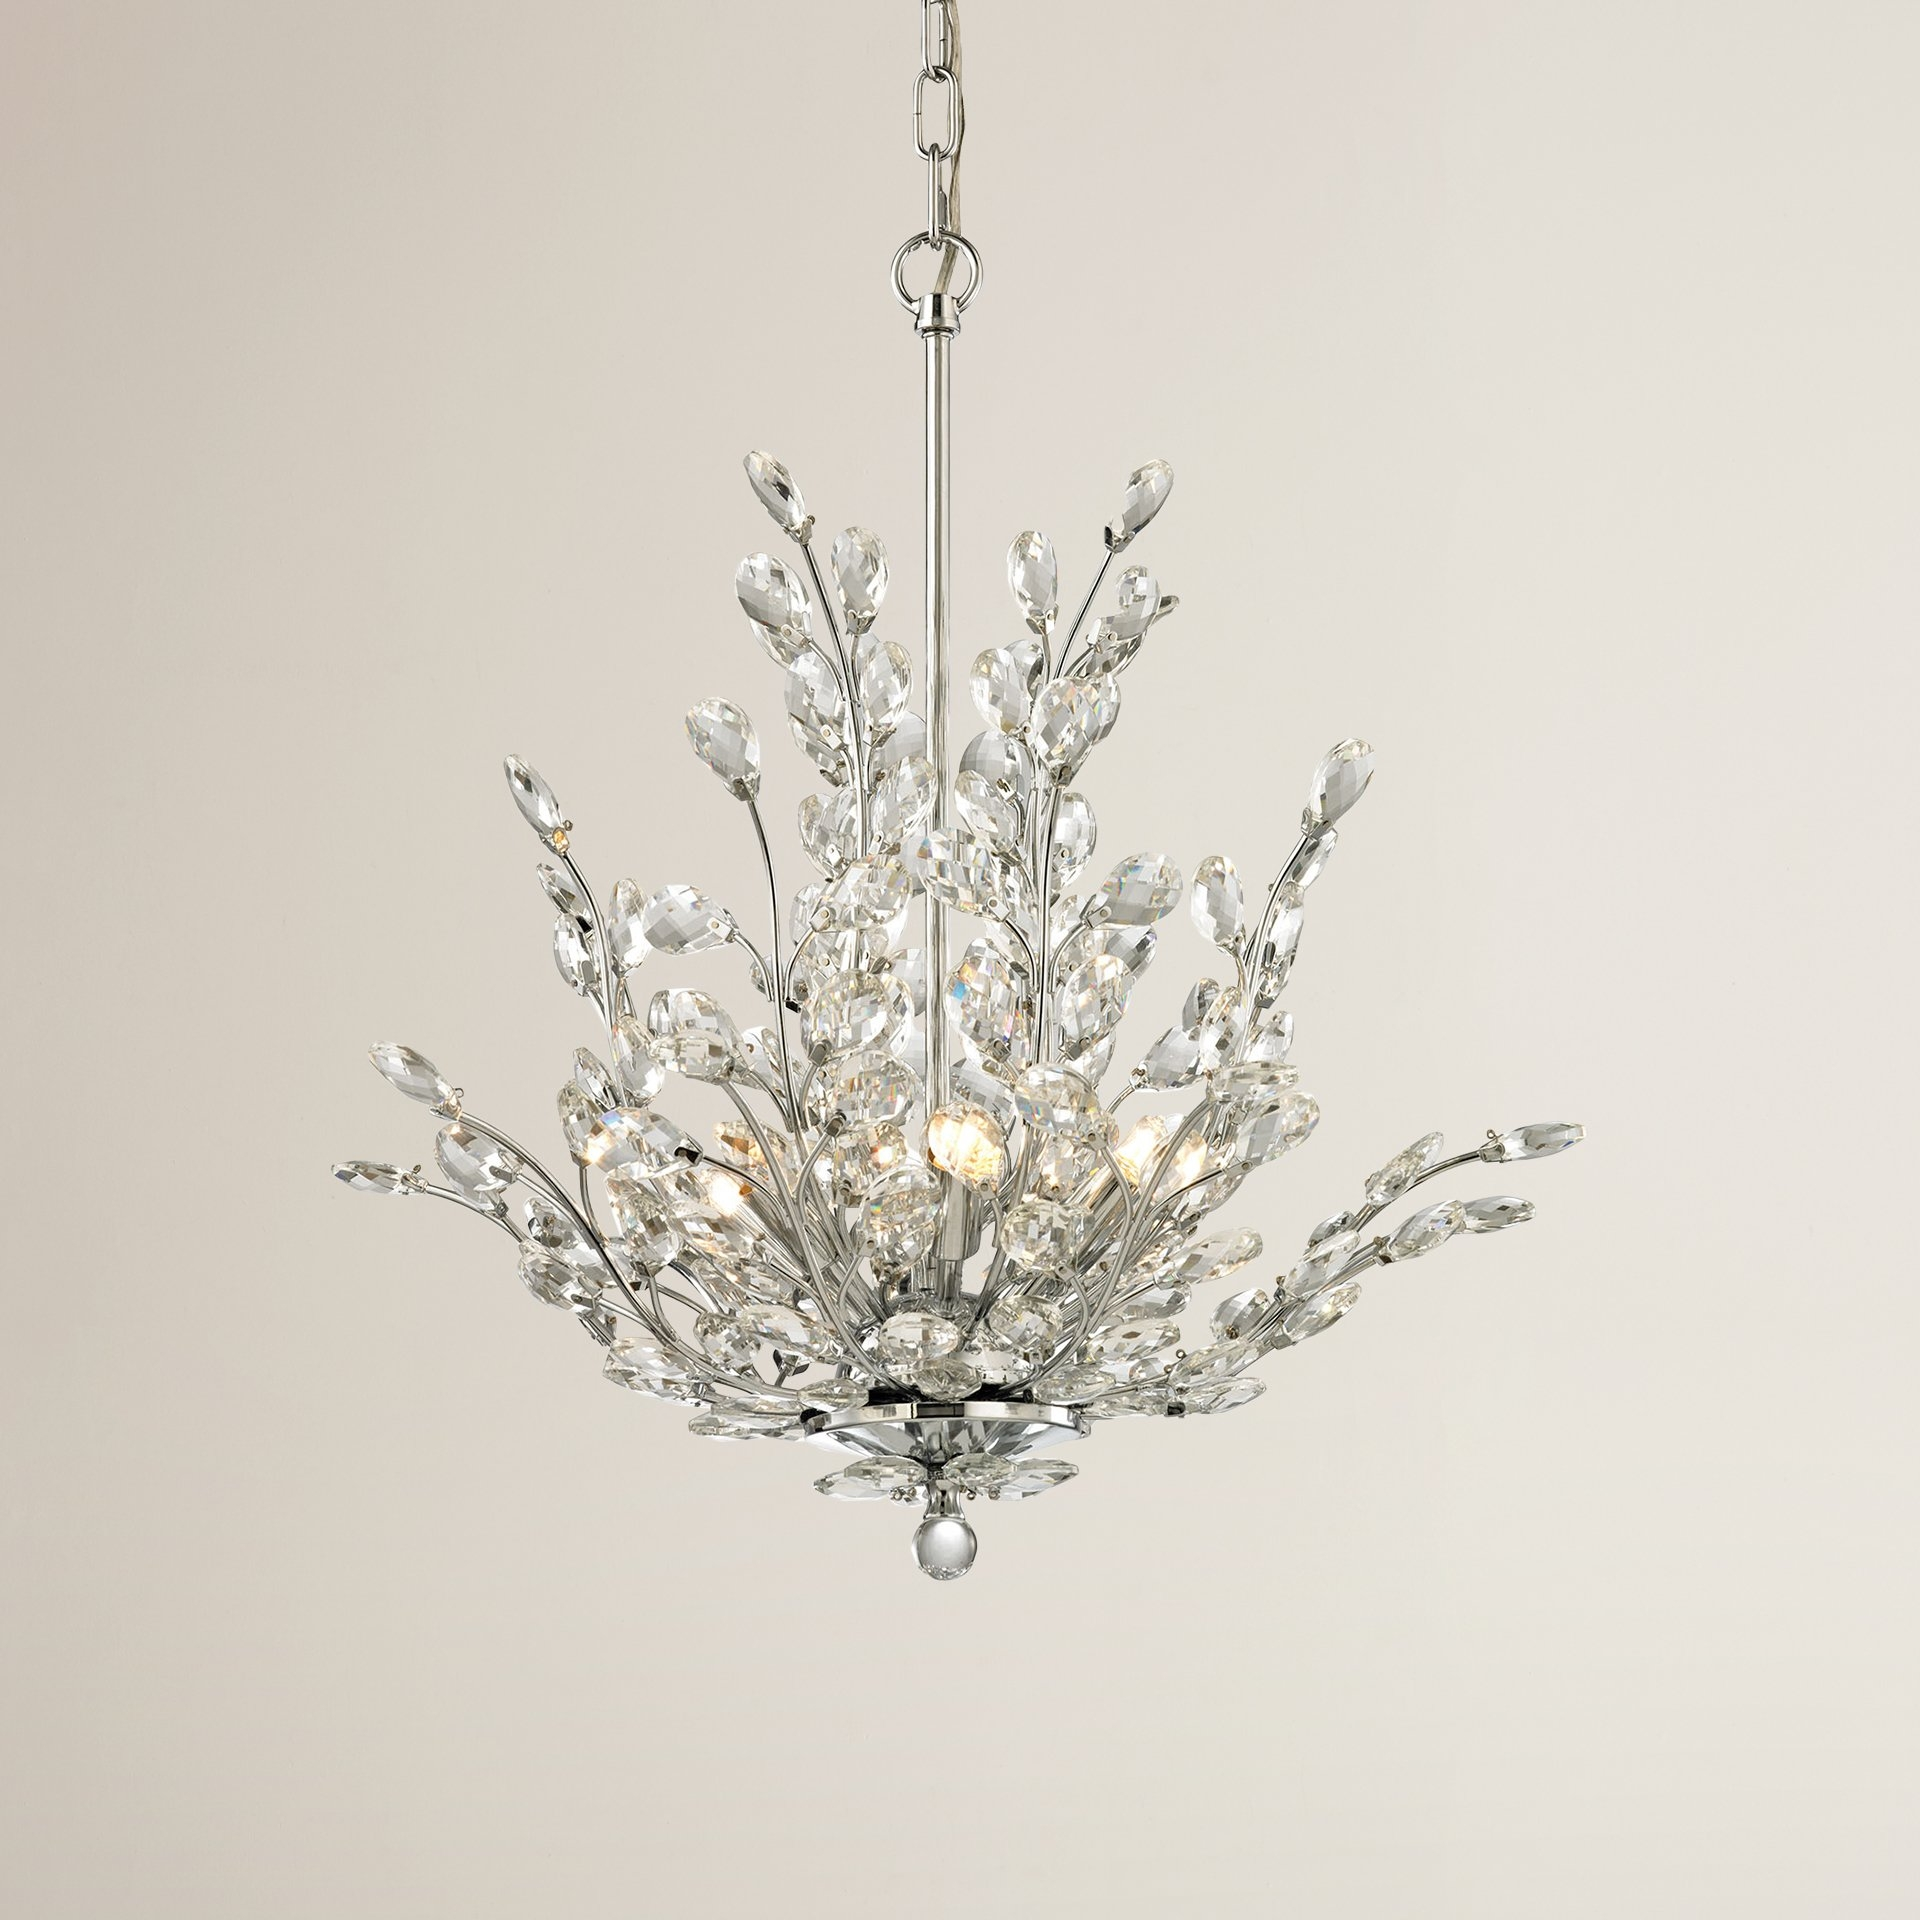 House Of Hampton Ryde 6 Light Crystal Chandelier Reviews Wayfair For Crystal Branch Chandelier (Image 8 of 15)